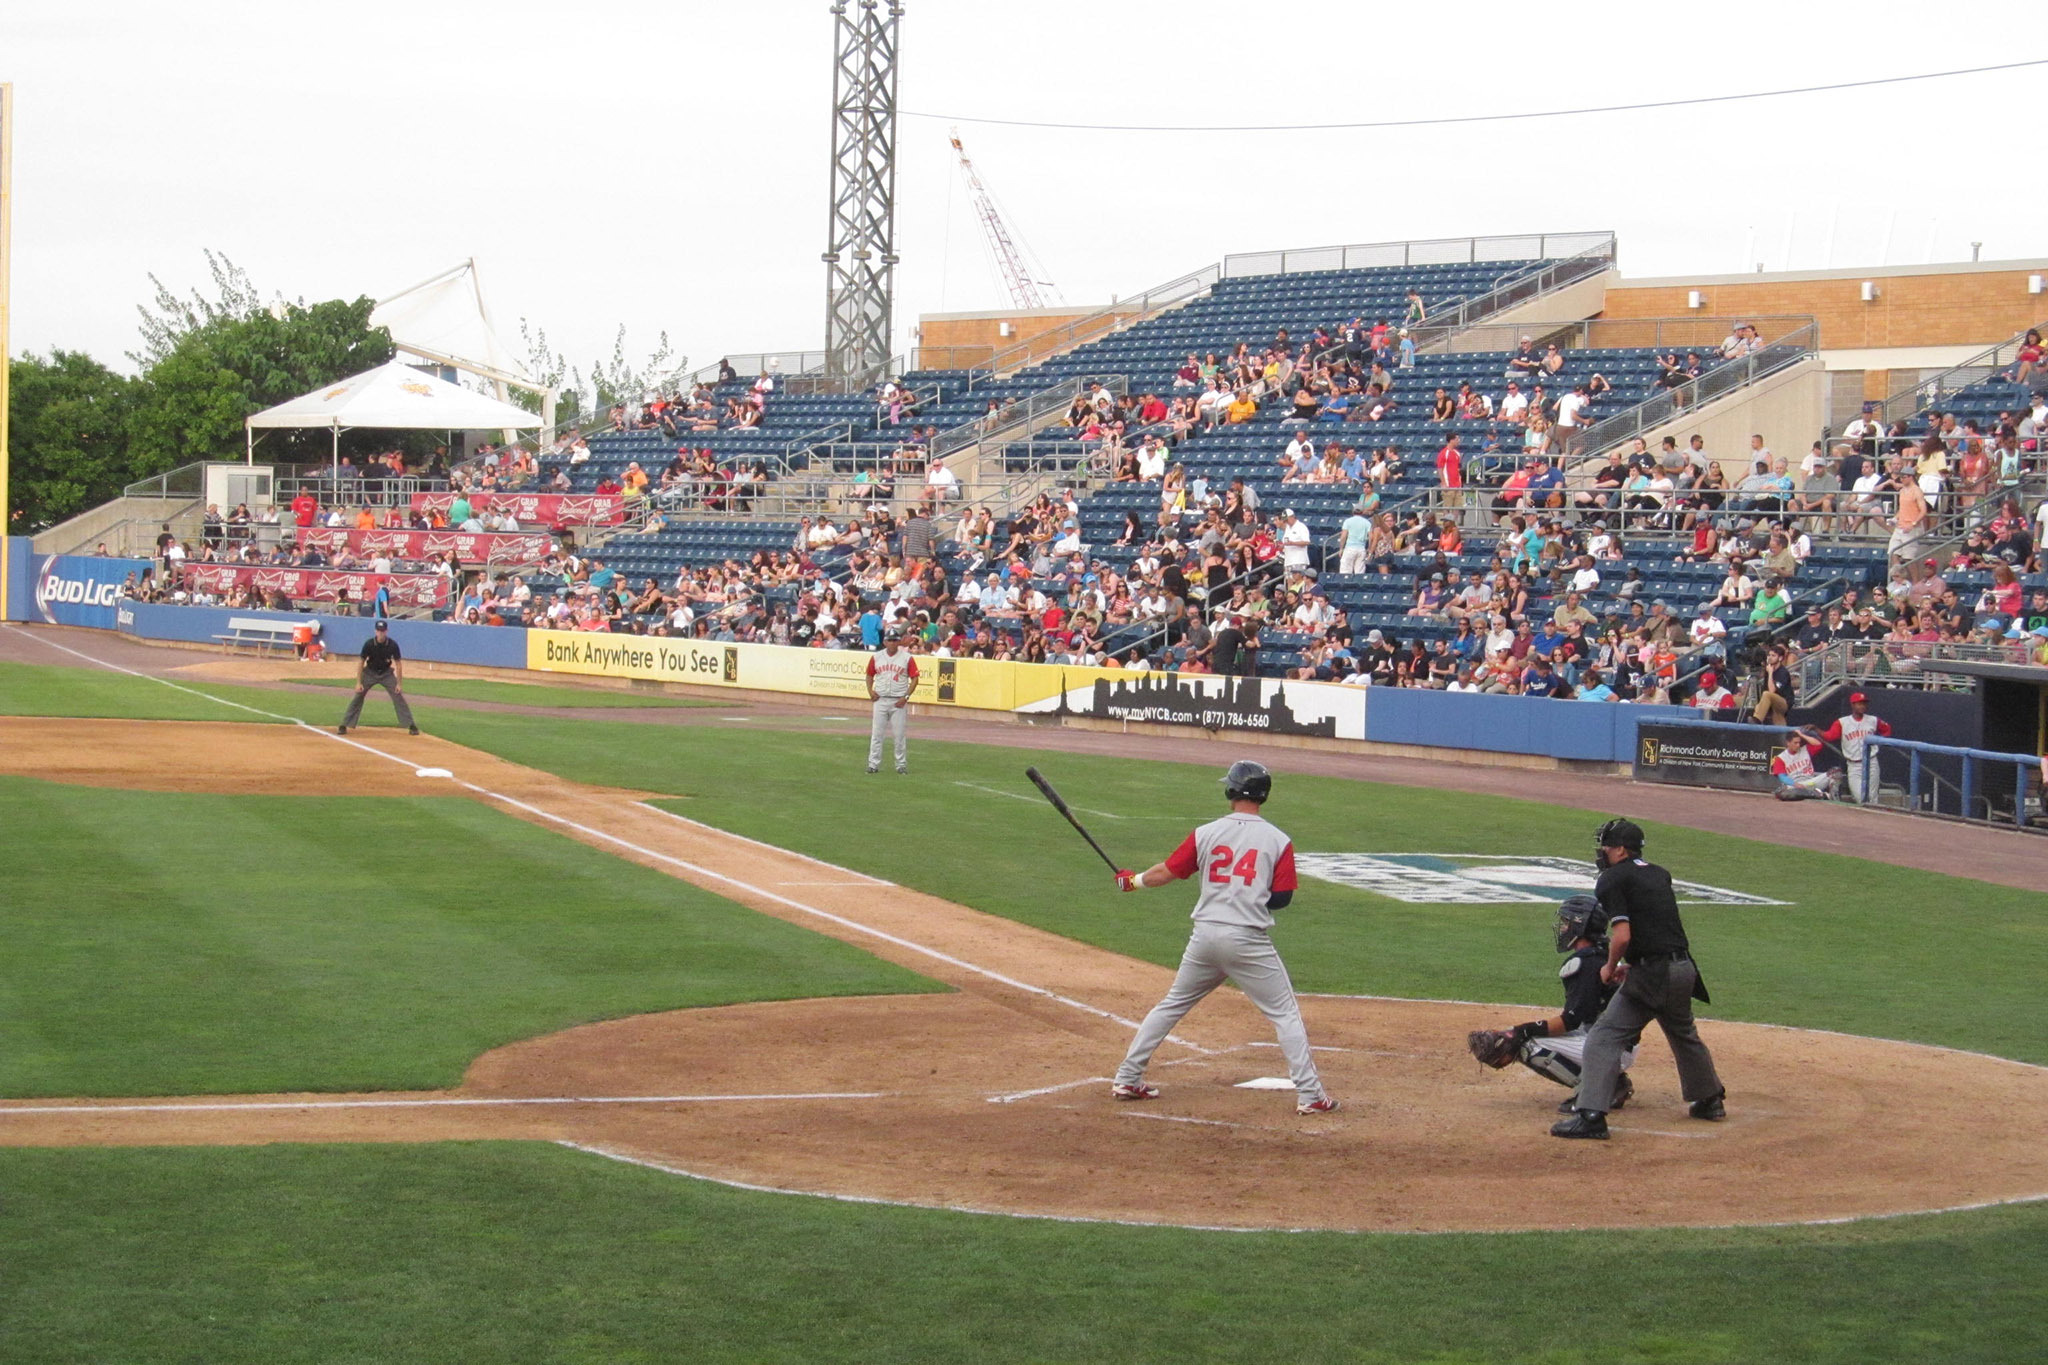 Brooklyn Cyclones vs. Williamsport Crosscutters